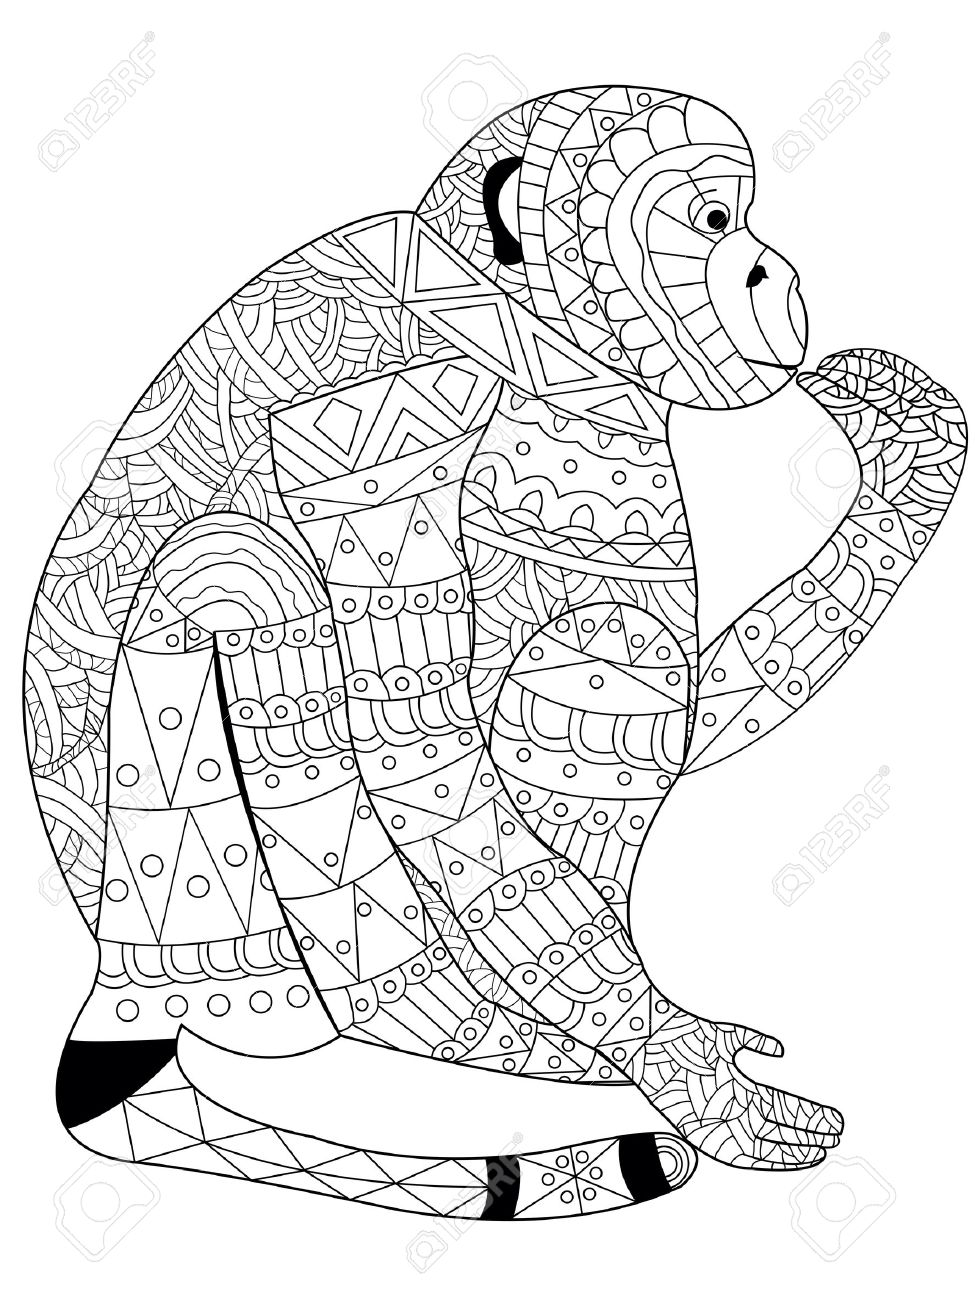 Monkey Coloring Book For Adults Vector Illustration. Anti-stress ...